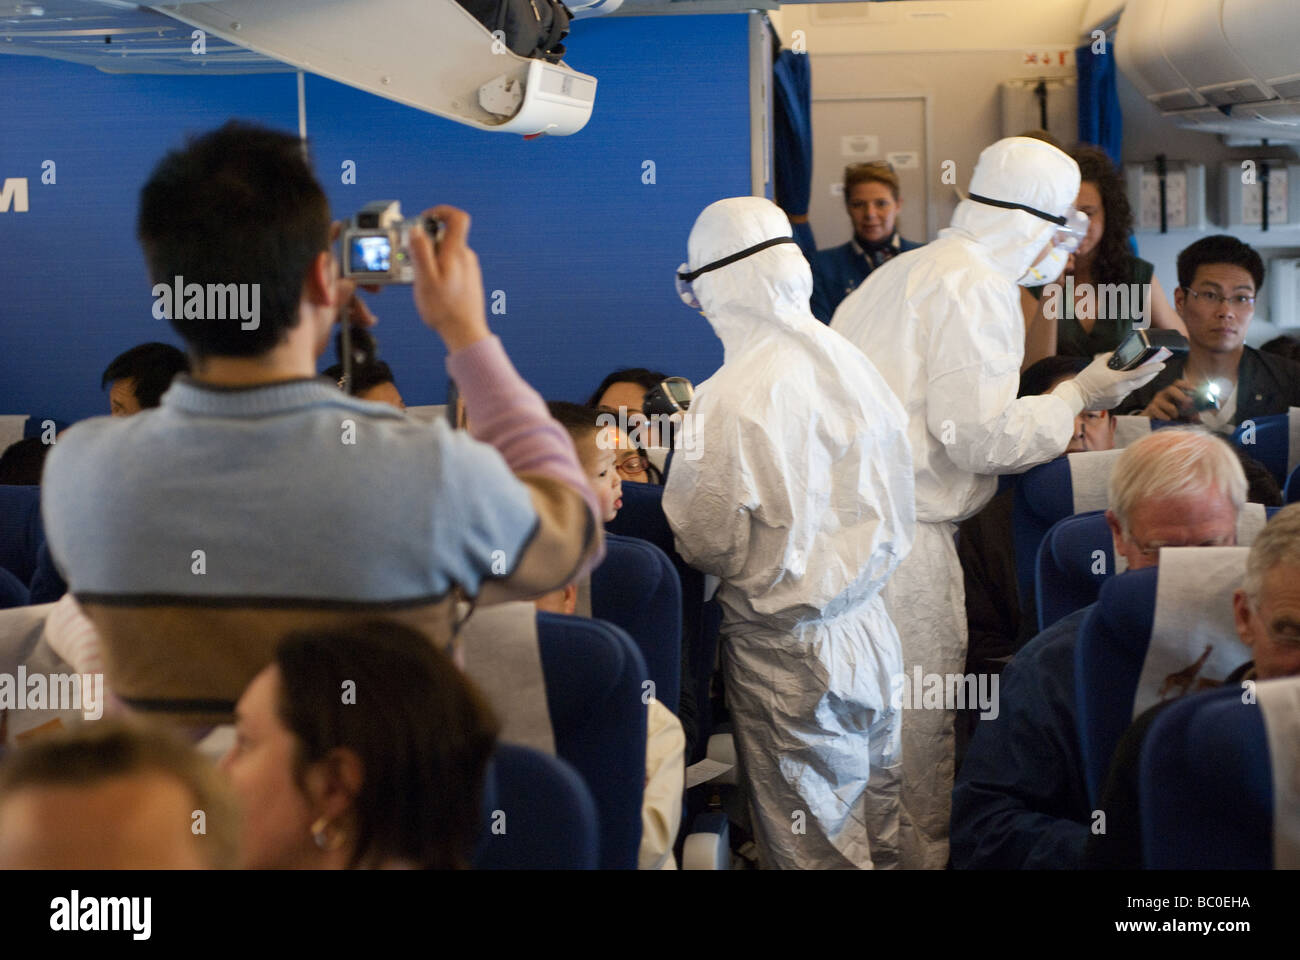 Medical workers aboard the plane from Amsterdam check passengers for signs of fever (swine flu) after landing at - Stock Image